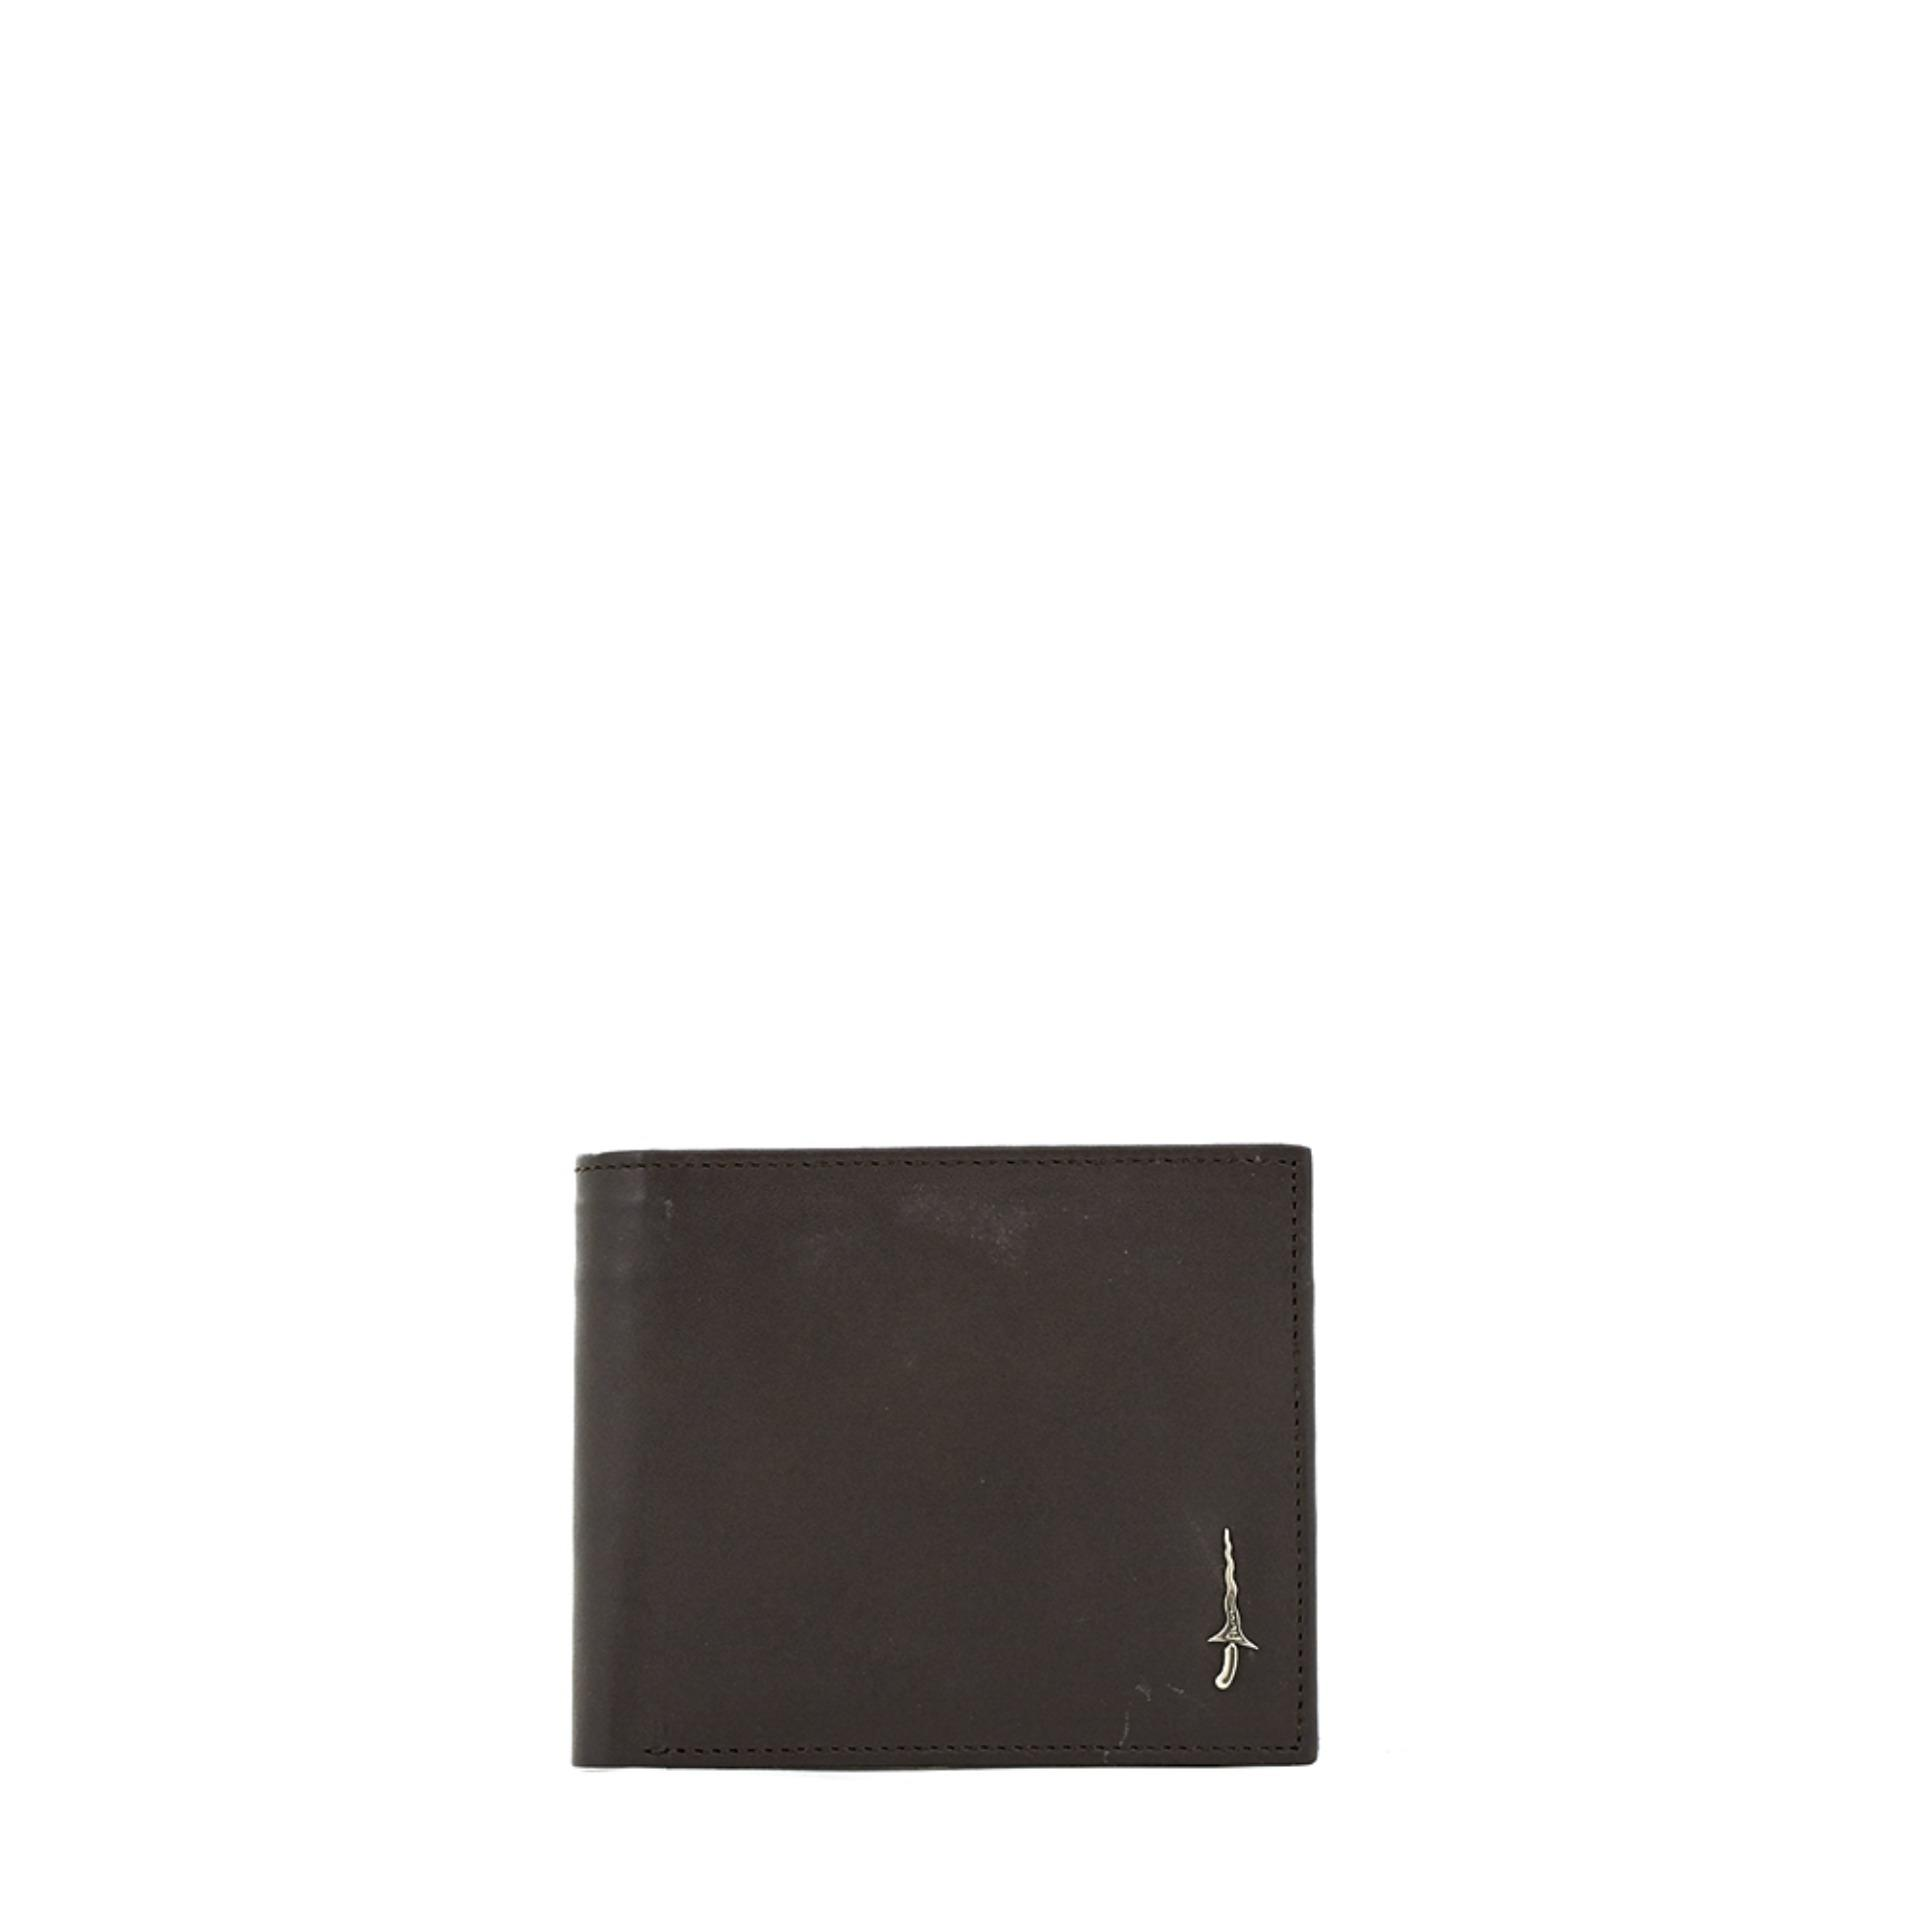 Top 10 Sophie Paris Alastor Wallet Online